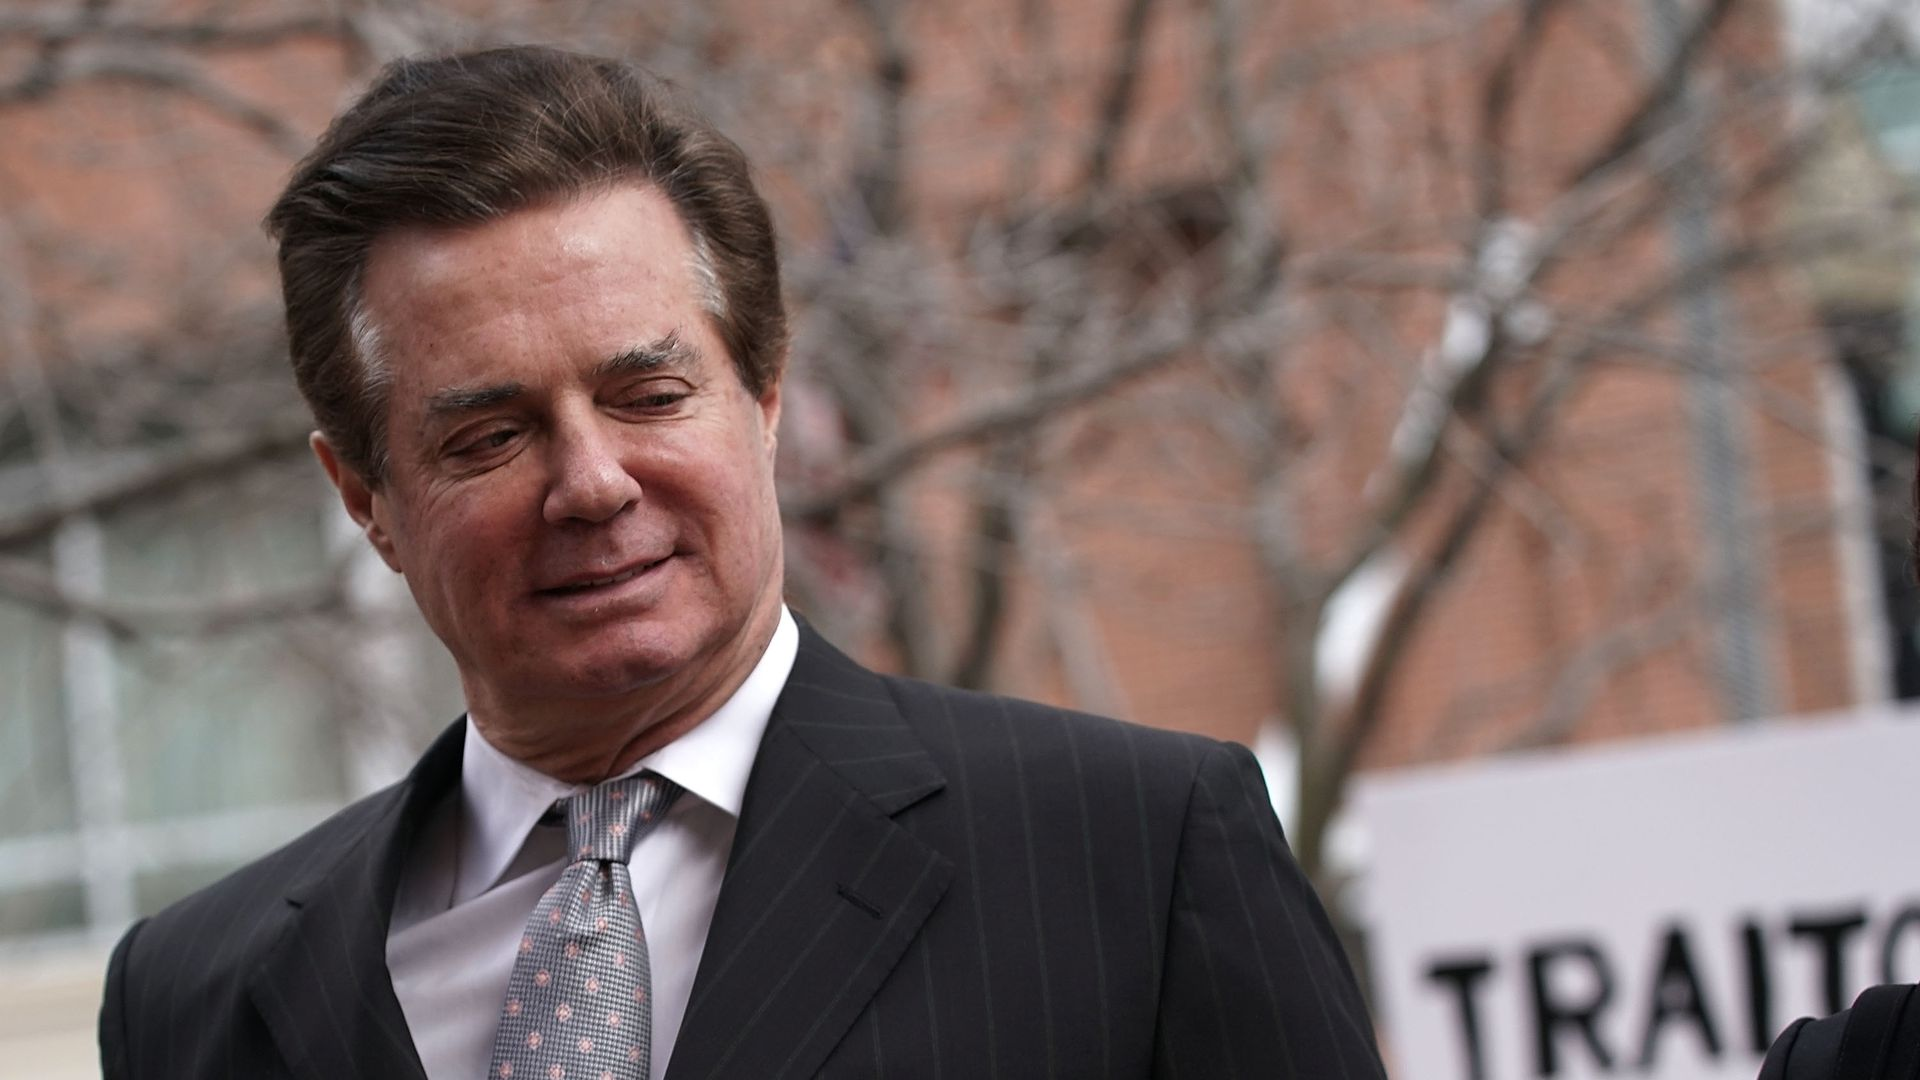 Paul Manafort leaving a courthouse